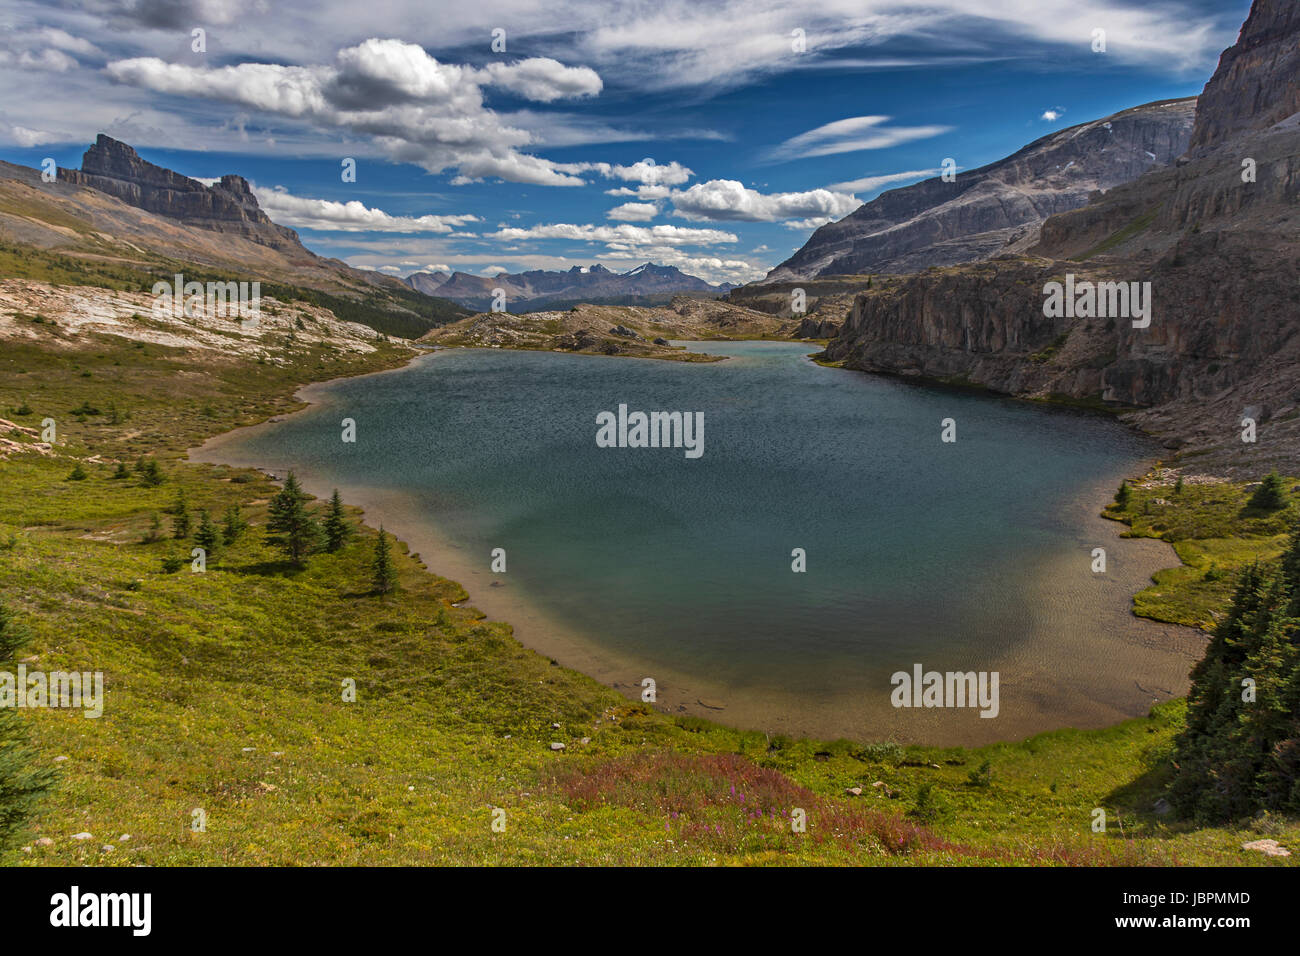 Unnamed Mountain Lake south of Molar Pass in Banff National Park Canadian Rocky Mountains - Stock Image